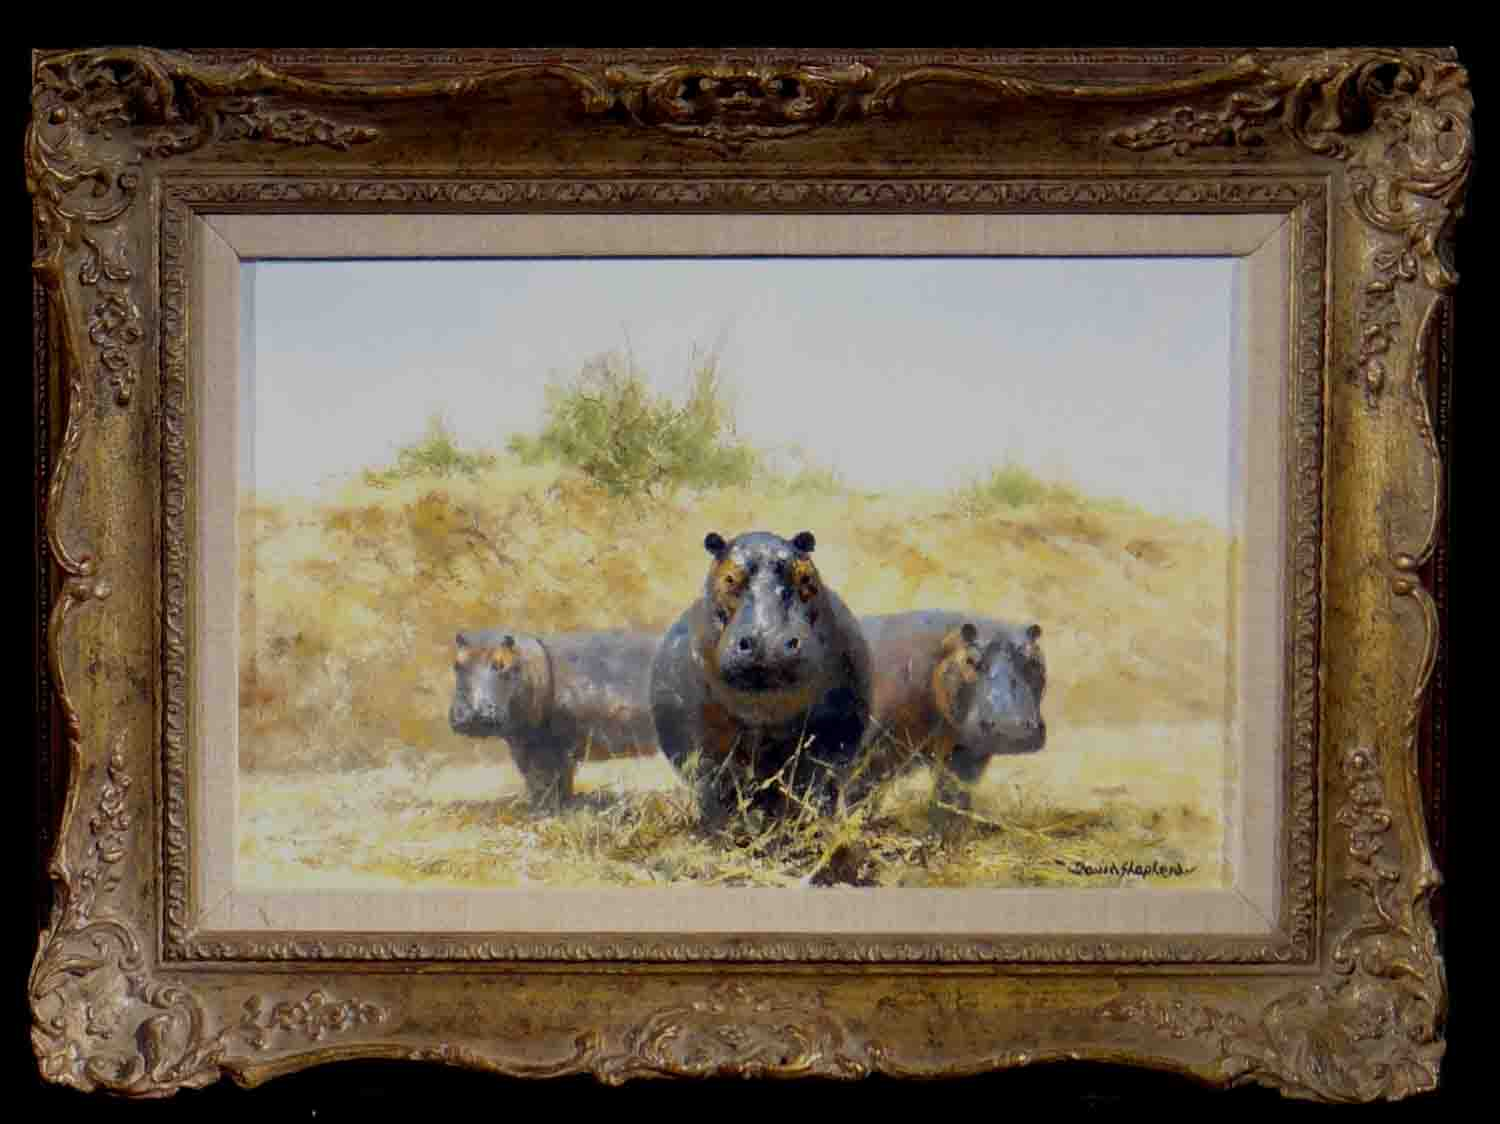 david shepherd original, Hippos